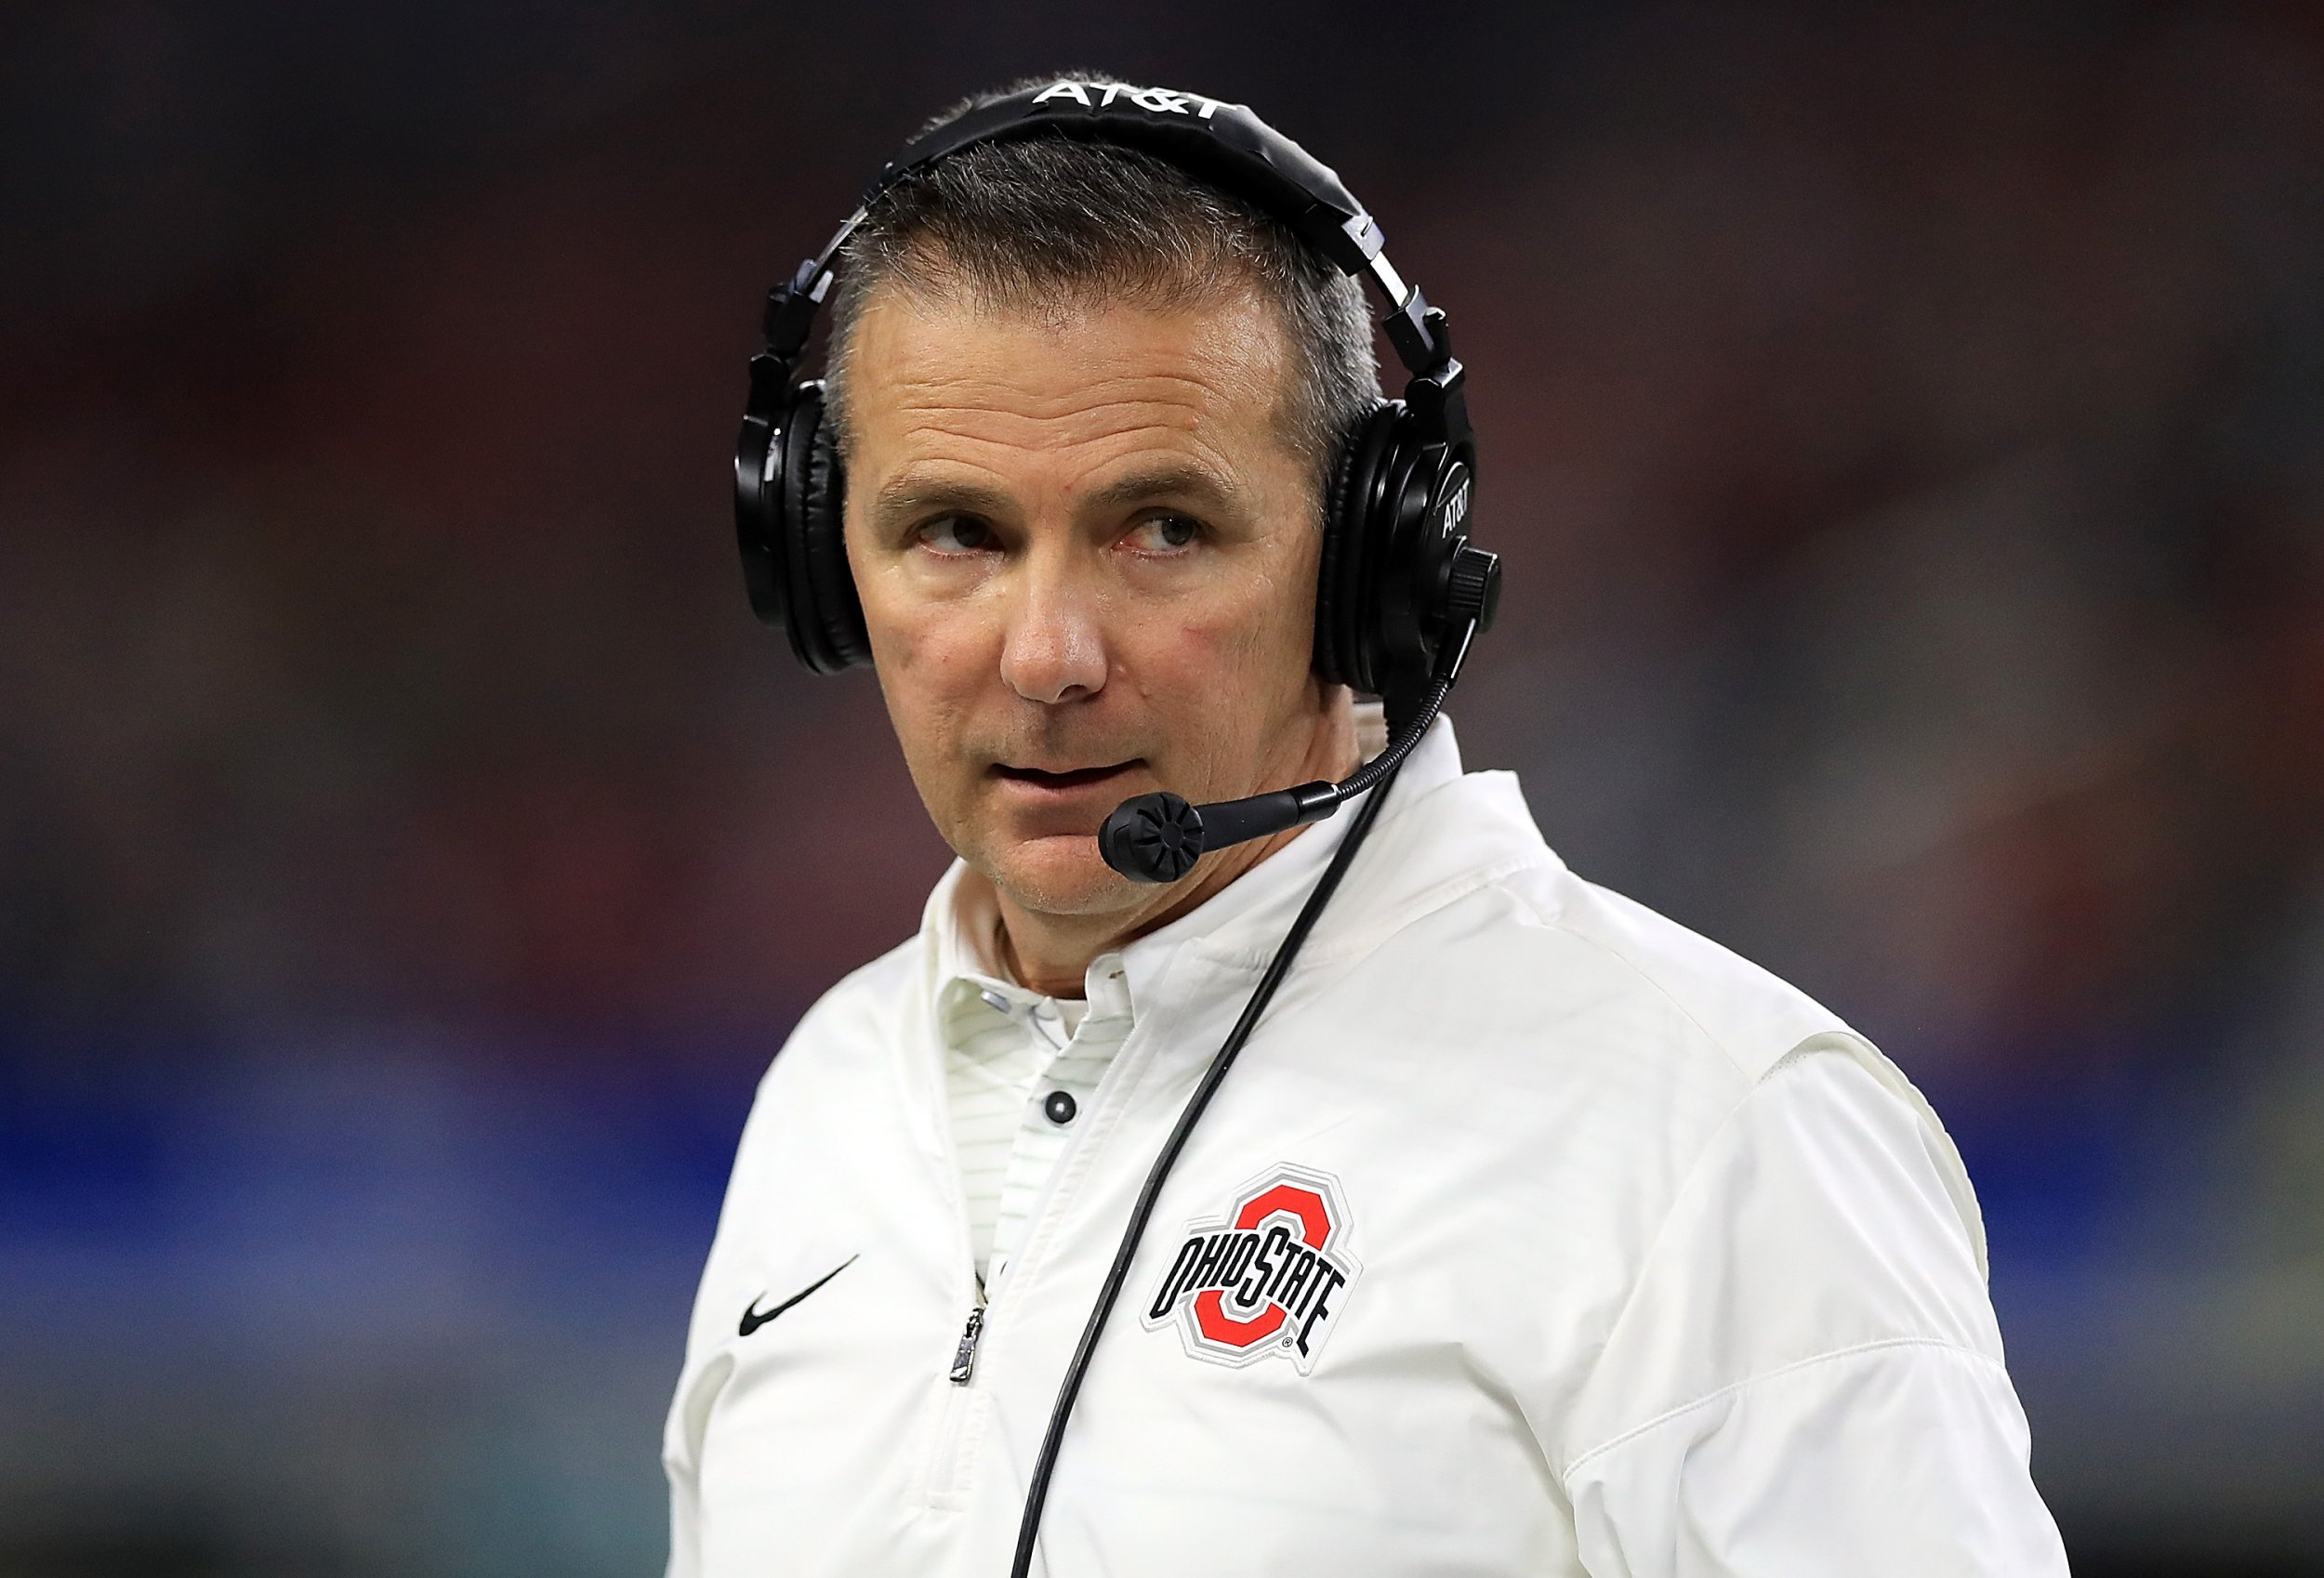 Will Urban Meyer Coach Ohio State in 2018 Amid Sexual Abuse Scandal?